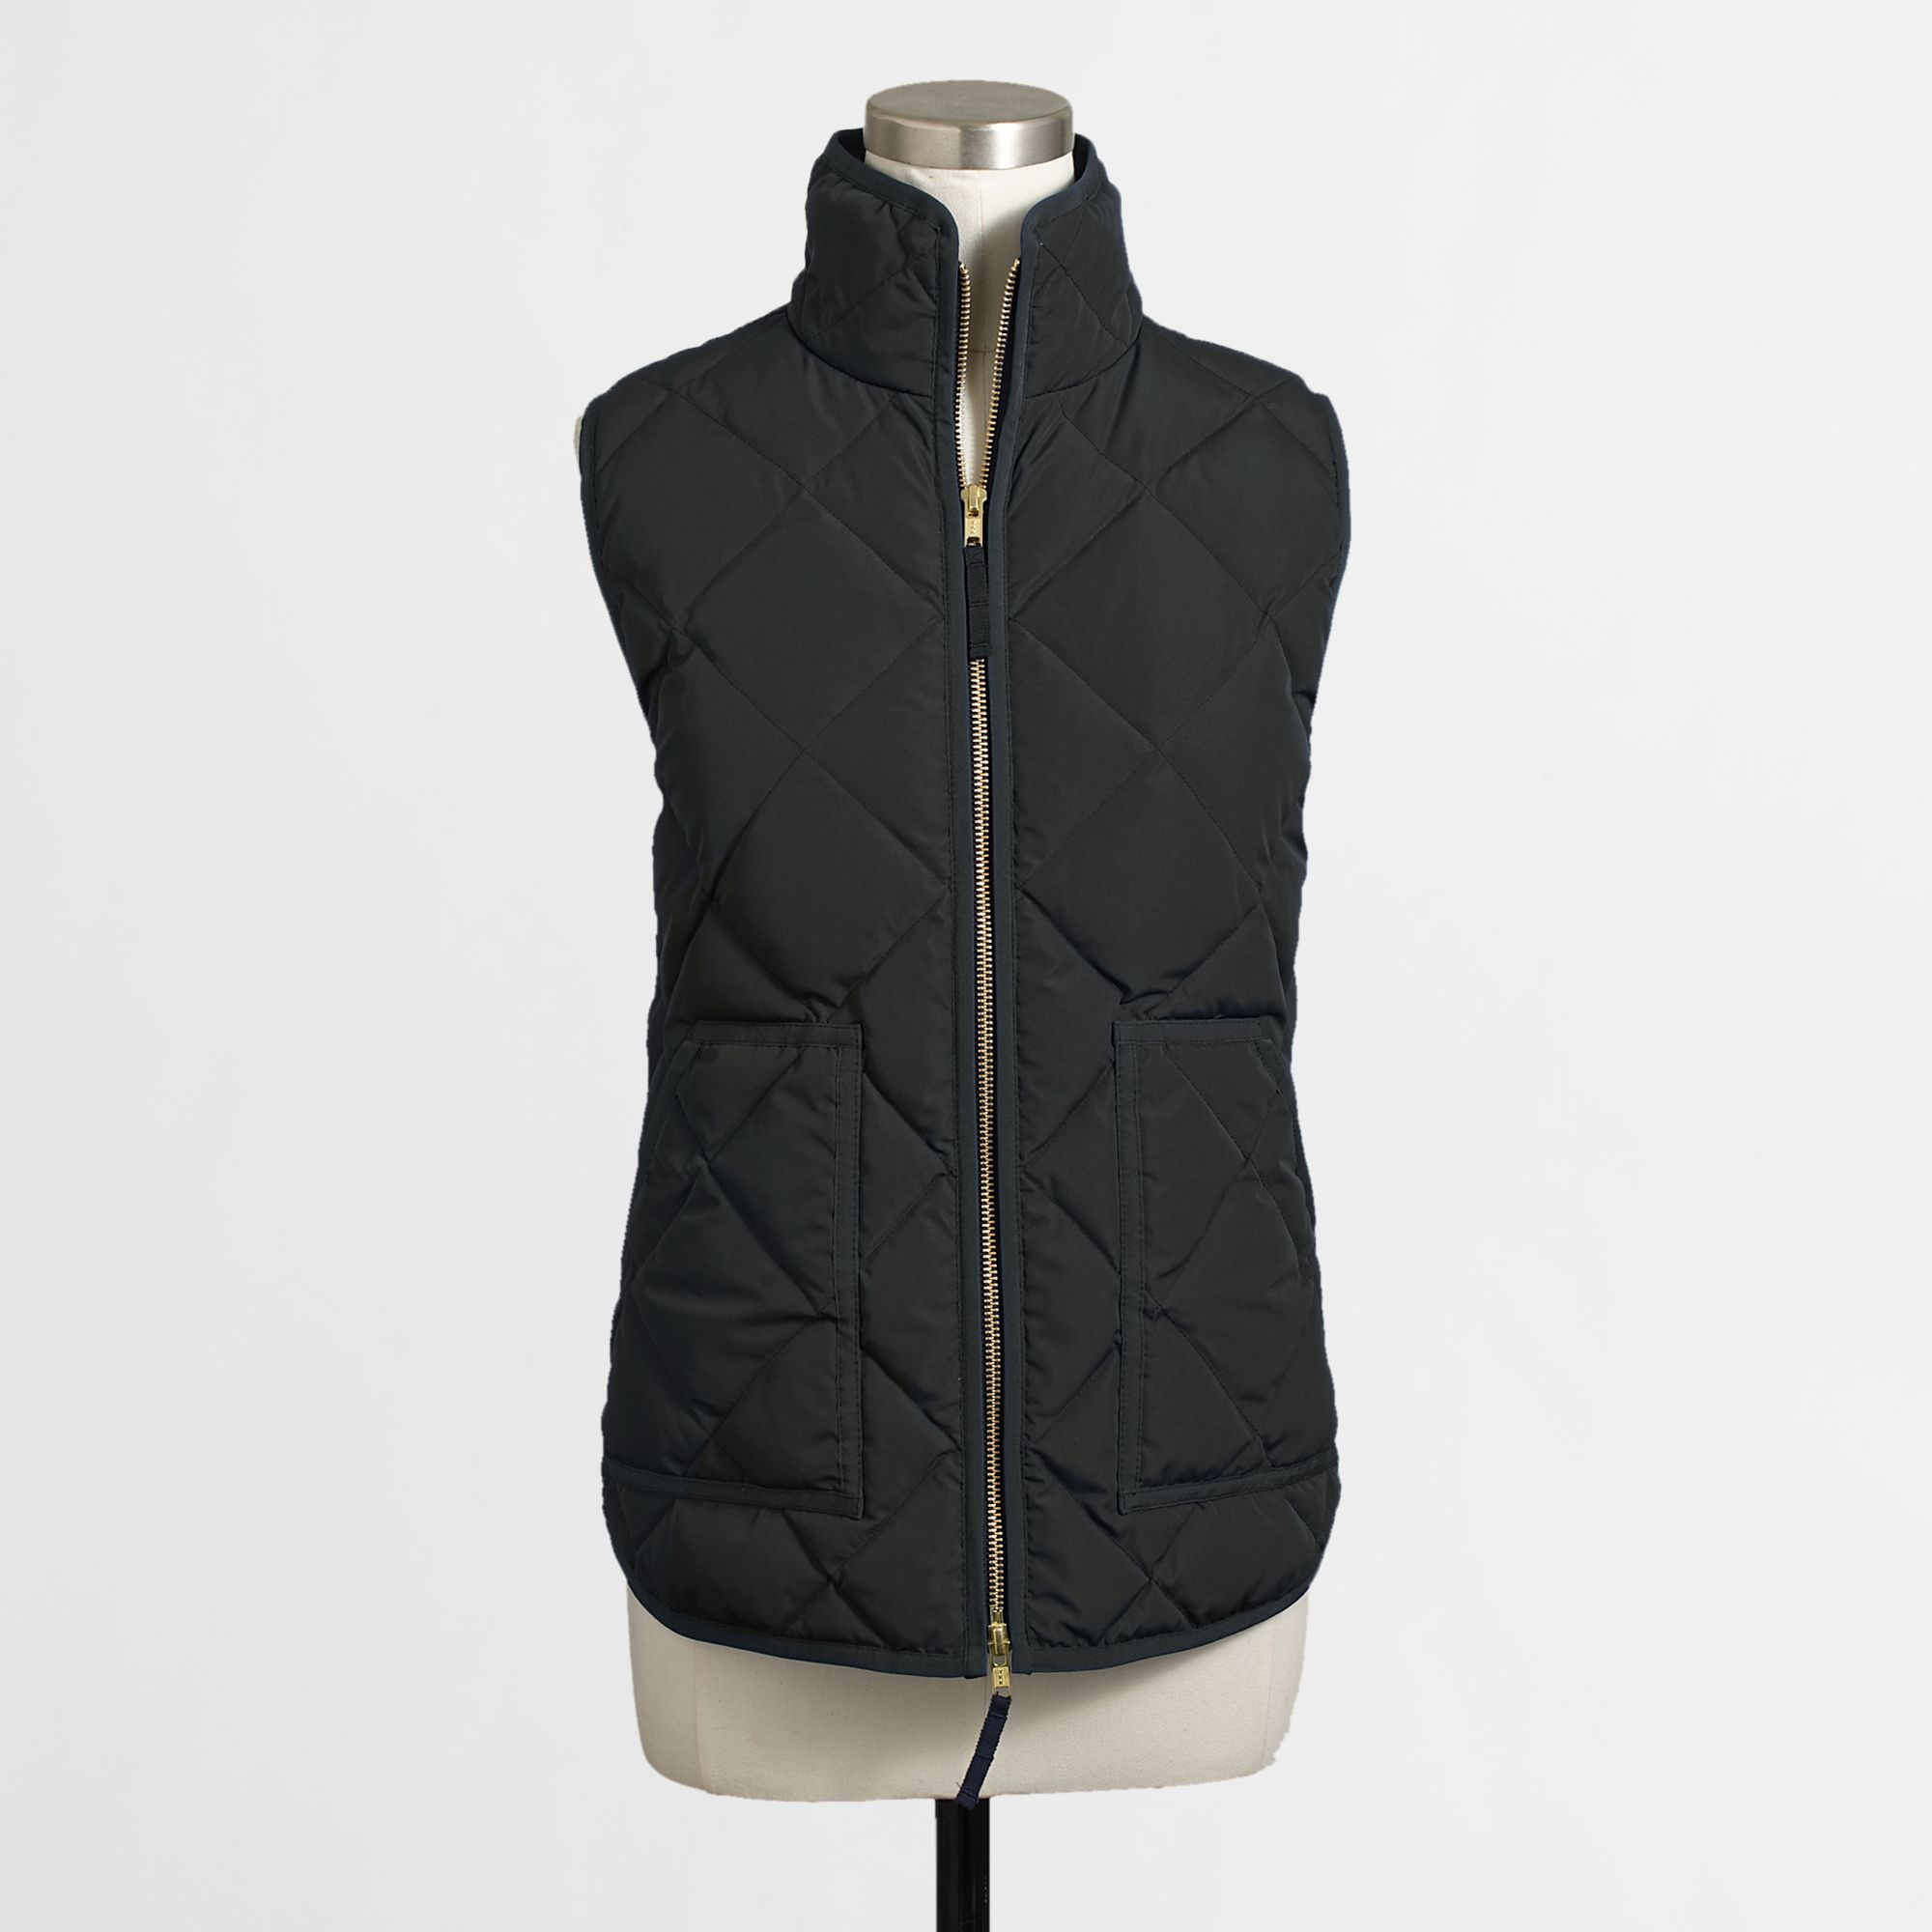 Shop for womens black vest online at Target. Free shipping on purchases over $35 and save 5% every day with your Target REDcard.